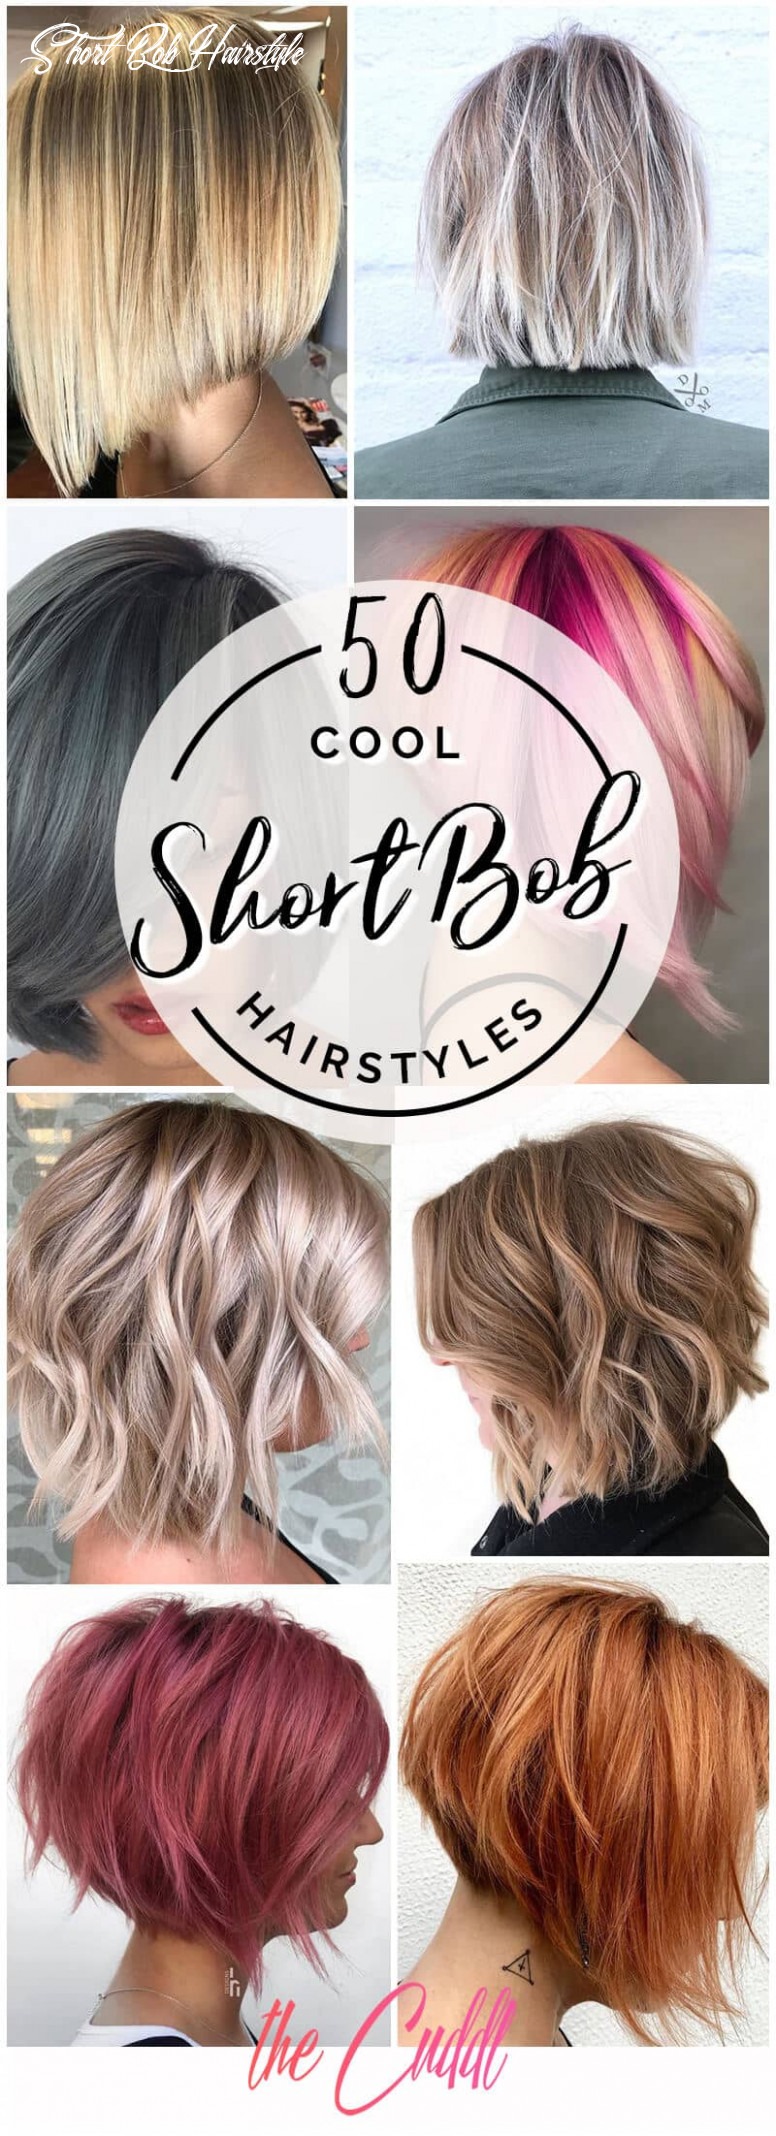 11 most eye catching short bob haircuts that will make you stand out short bob hairstyle